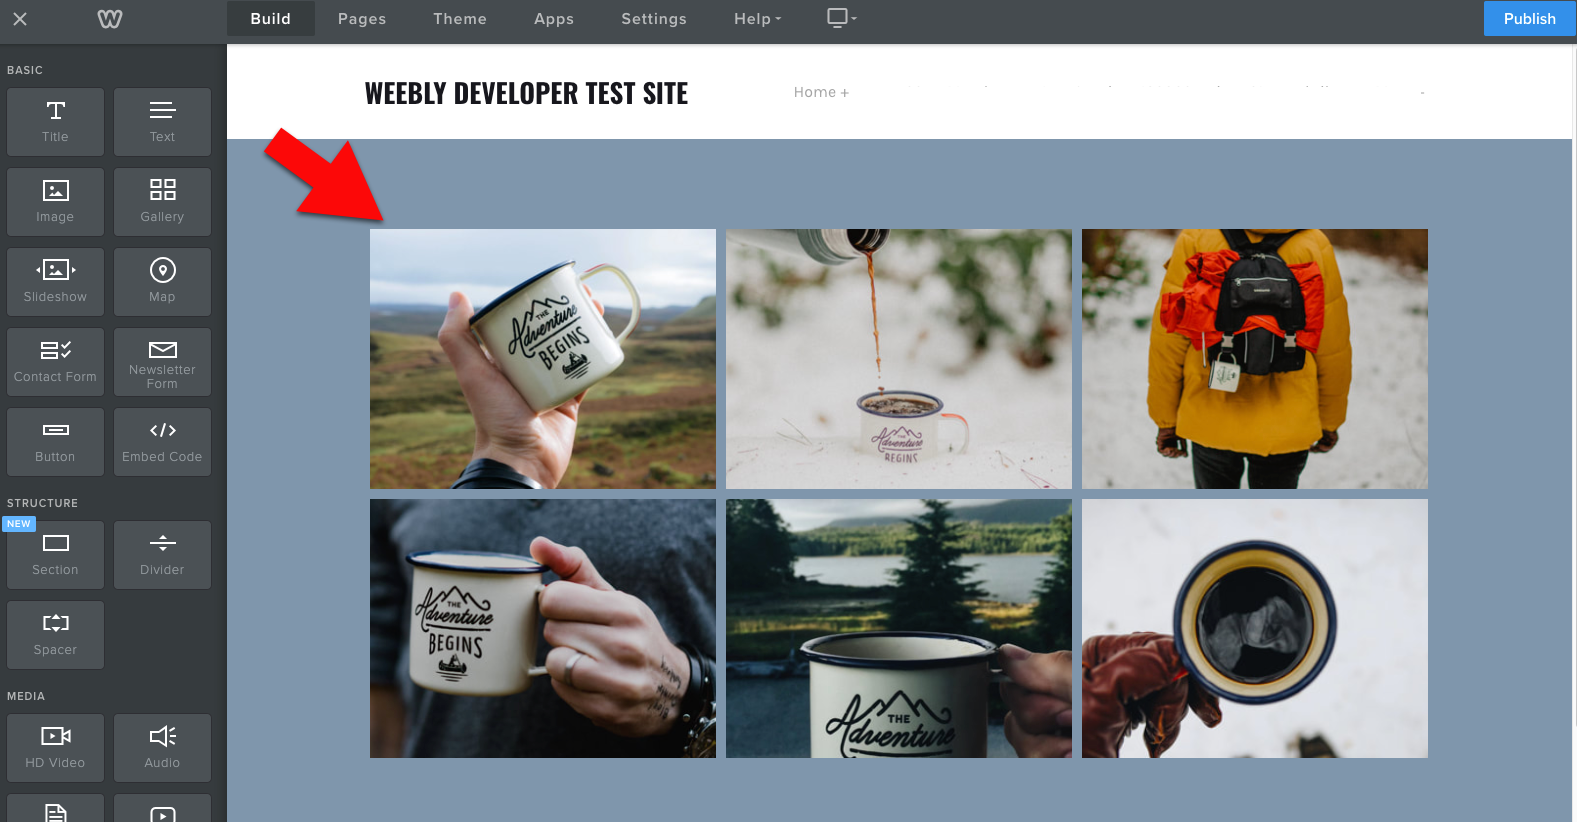 Weebly image gallery